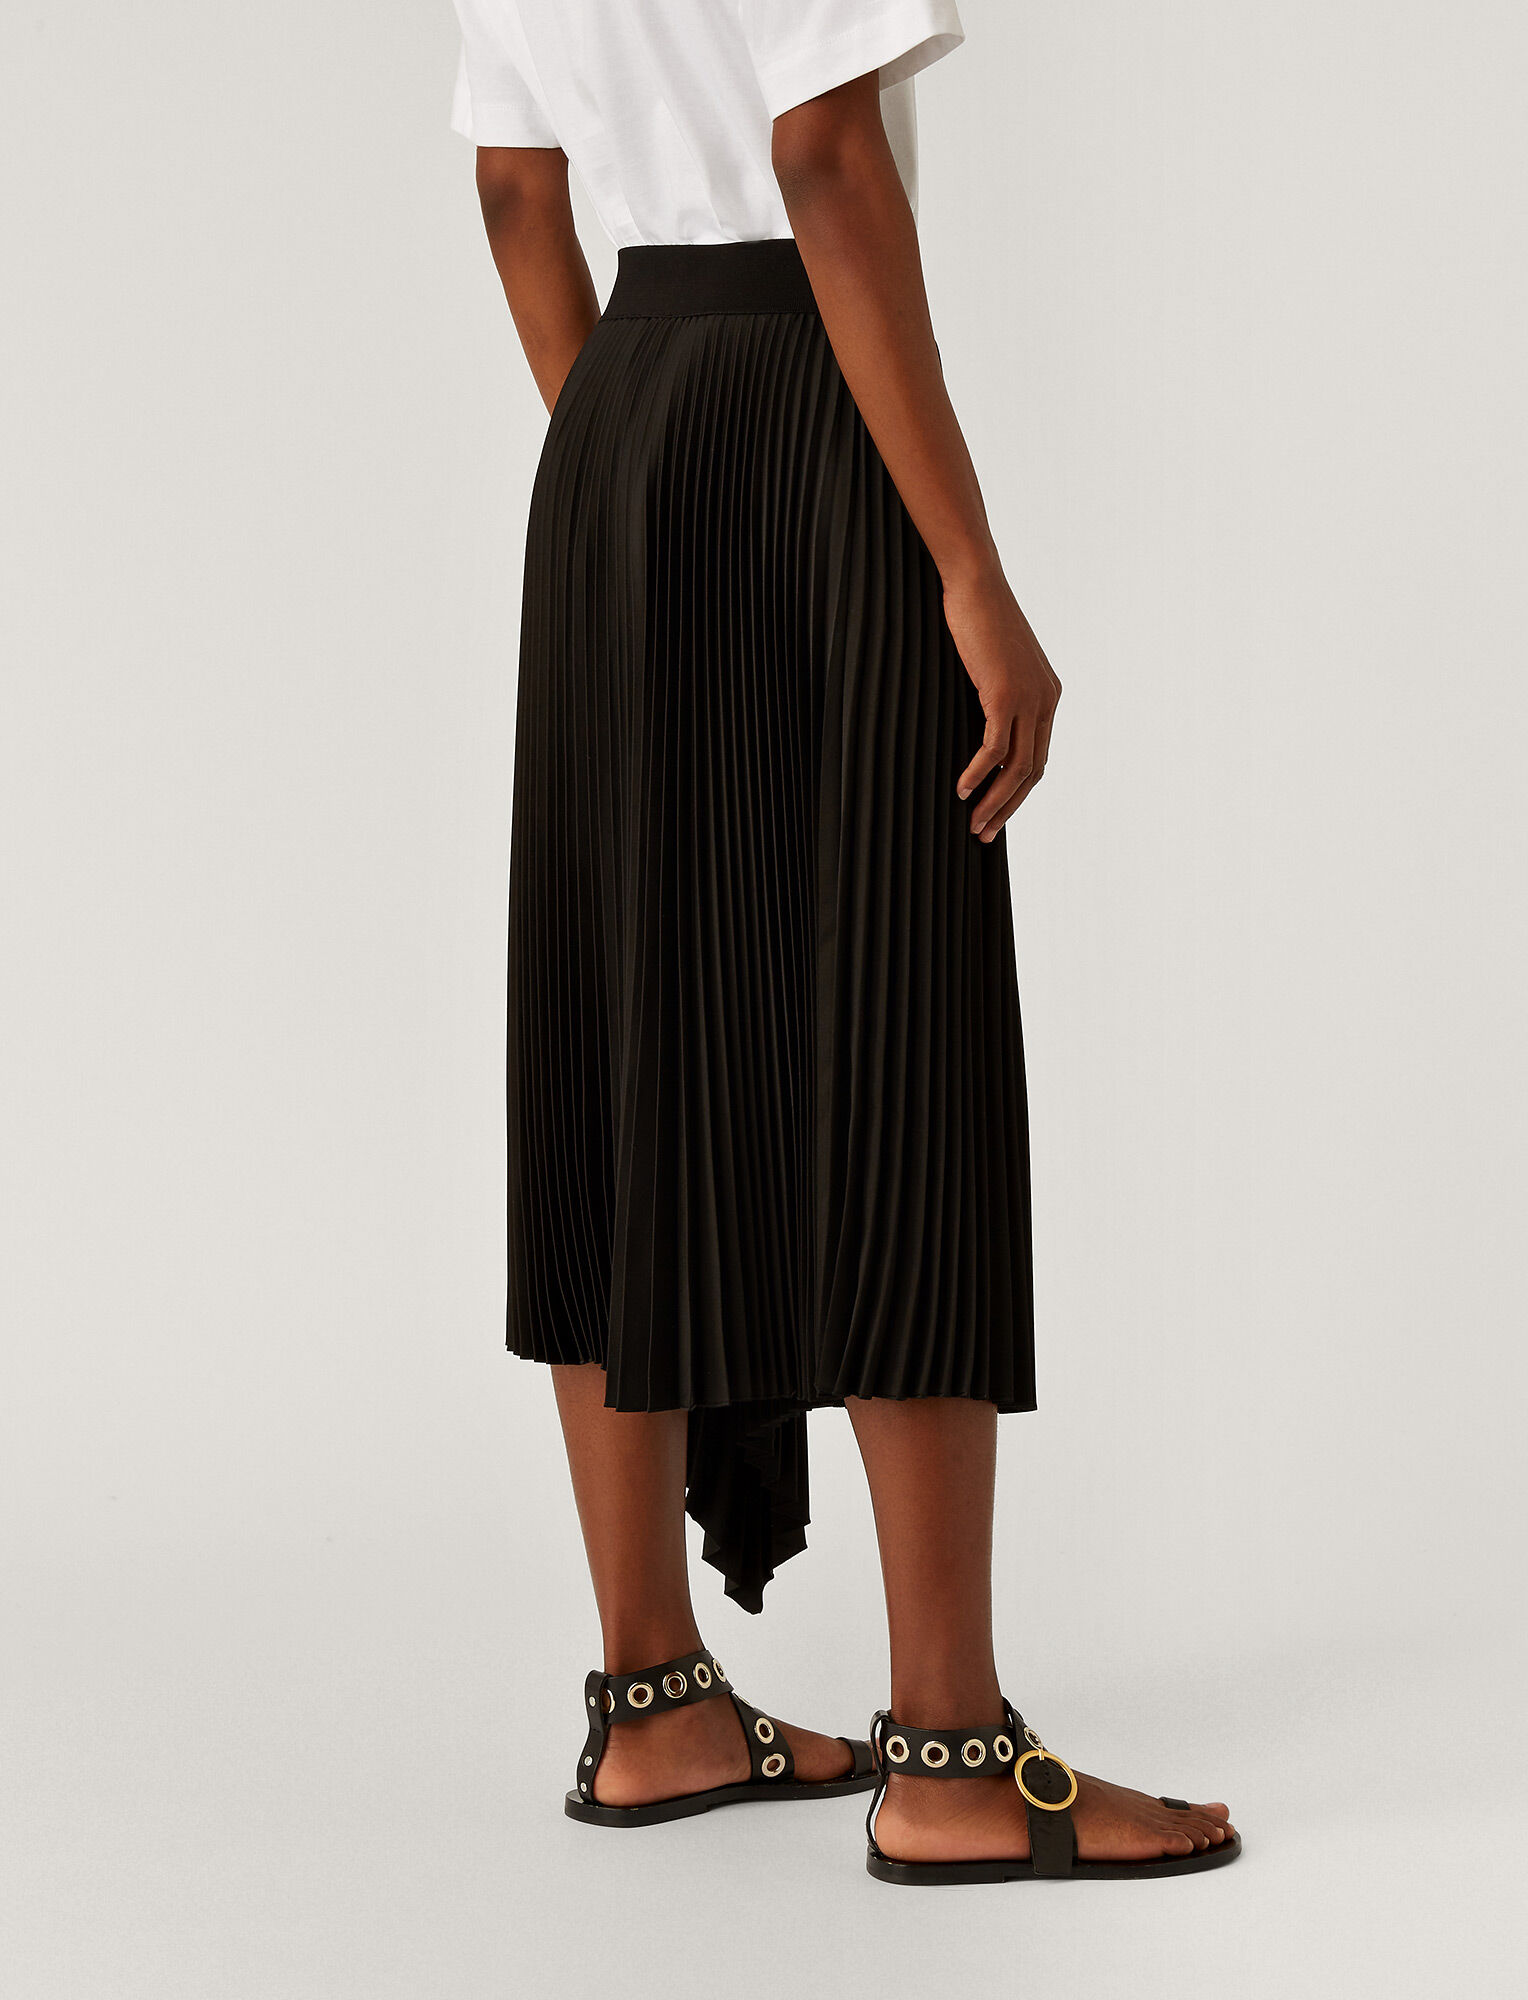 Joseph, Sabin Knit Weave Plissé Skirt, in Black